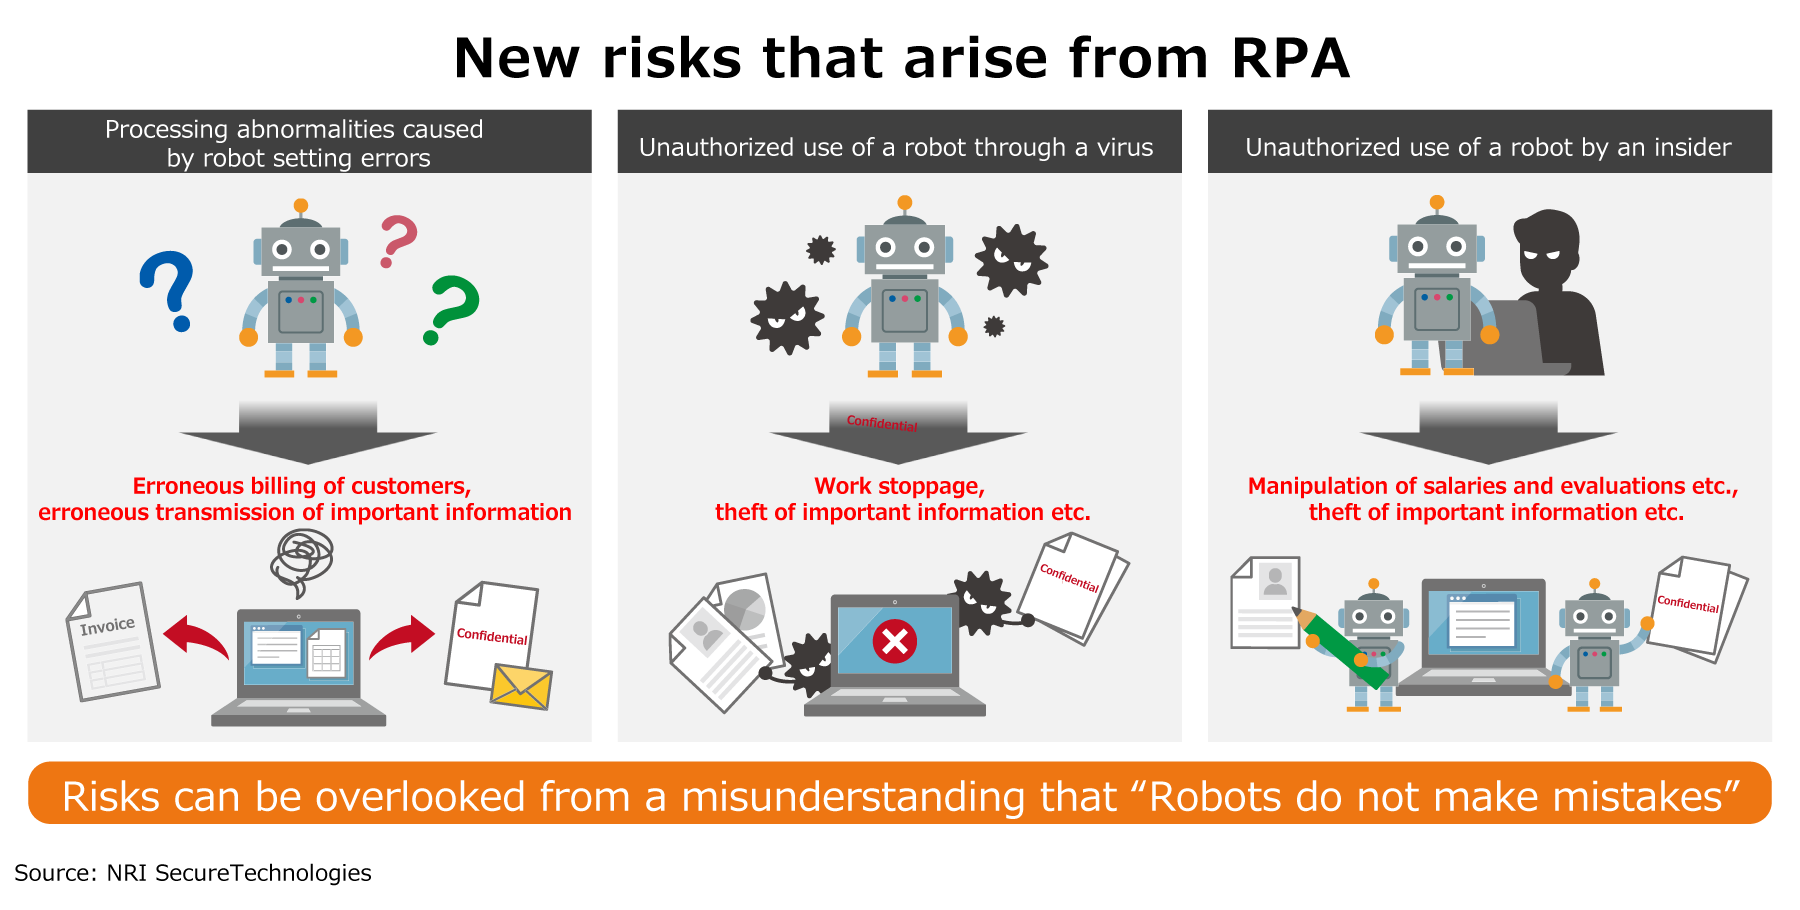 New risks that arise from RPA